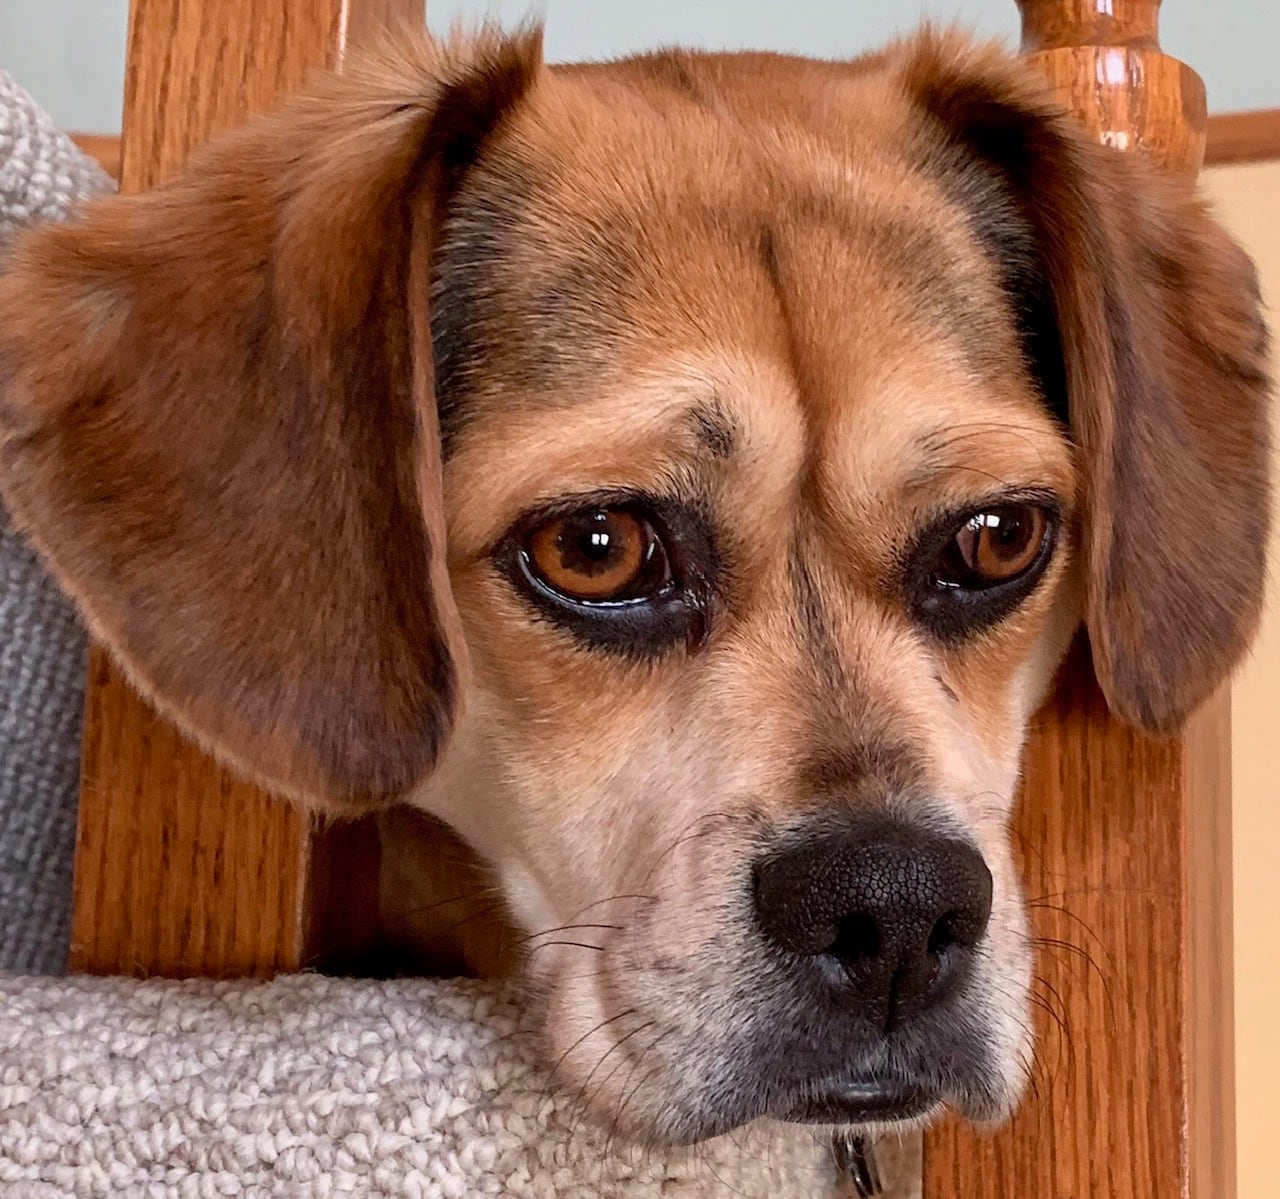 Puppy dog eyes are no accident, research study shows | CBC News